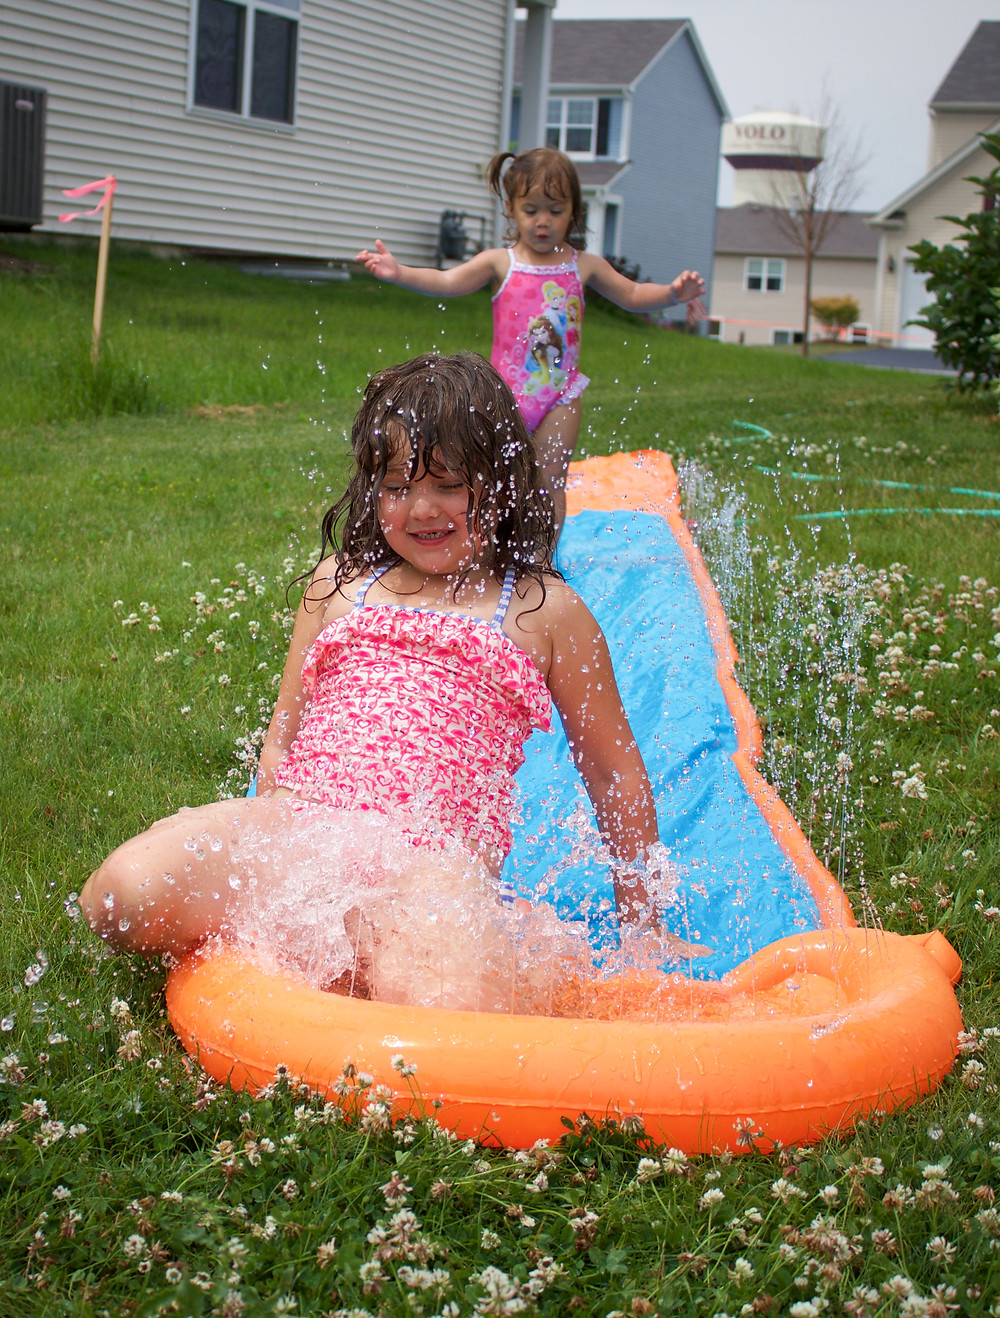 Blue Sky Daycare home daycare children enjoying water play time outdoors